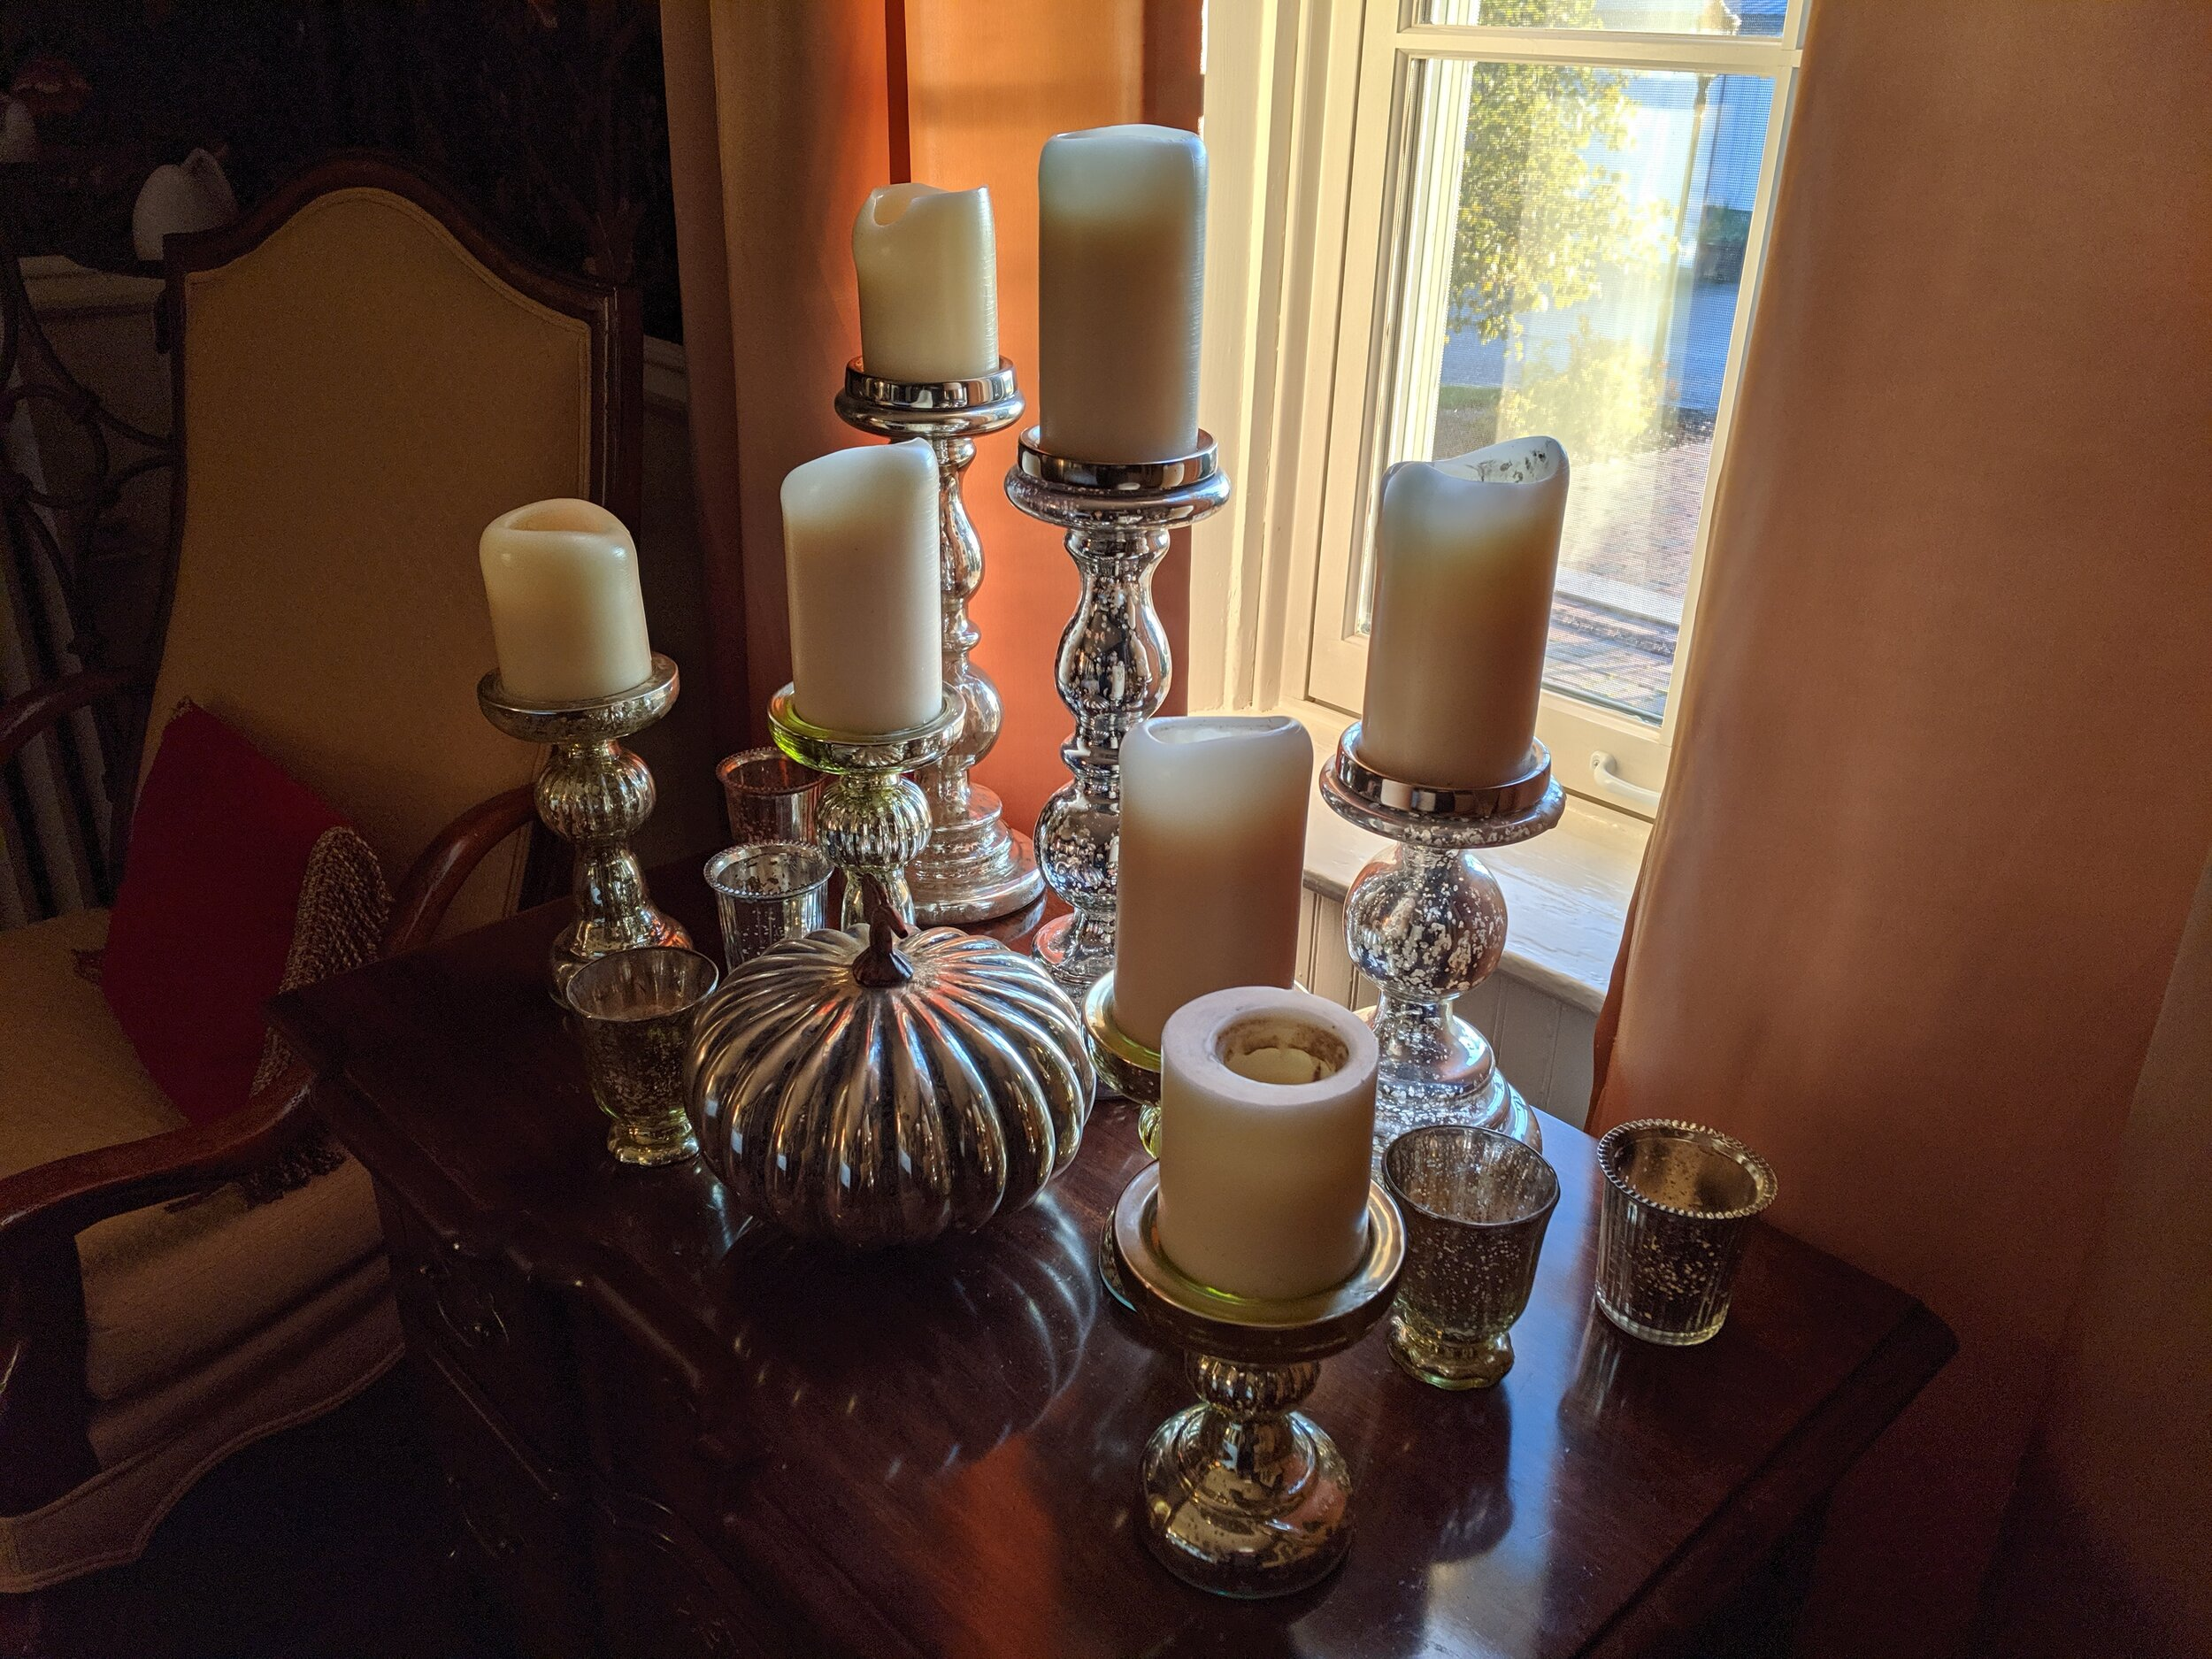 As the days get darker, mercury glass and candles add light to spaces. It's one of Lori's favorite tricks!